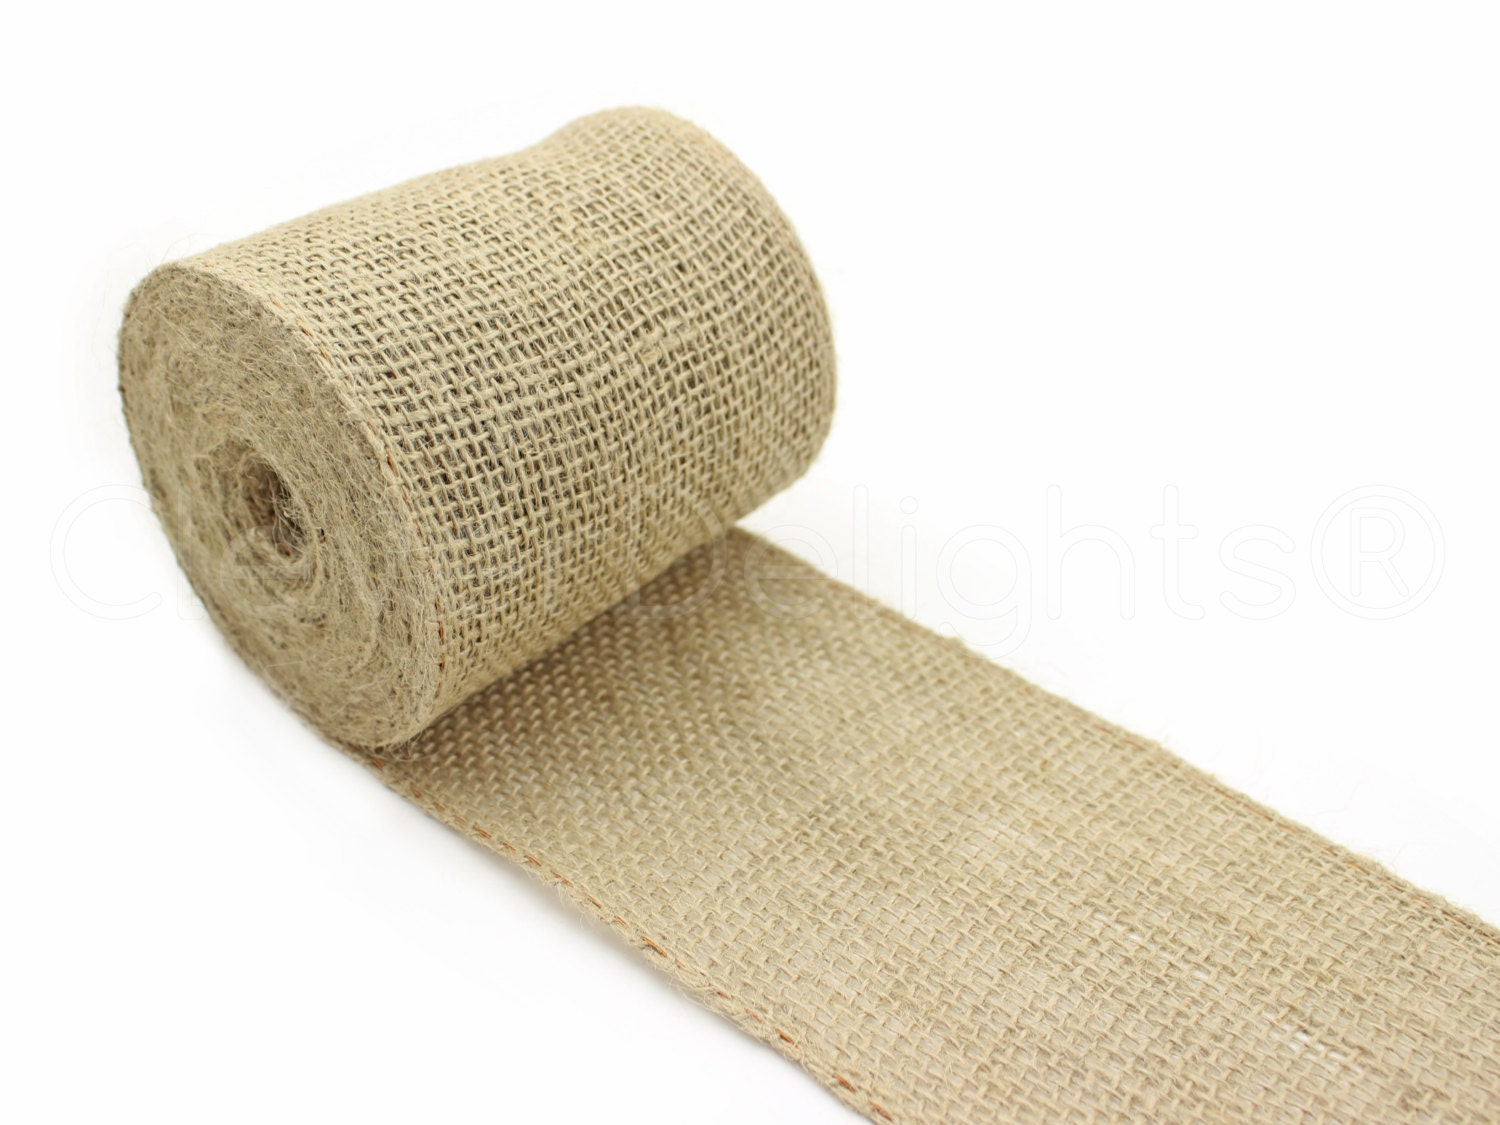 4 wired edge burlap ribbon 10 yards natural color for How to use burlap ribbon